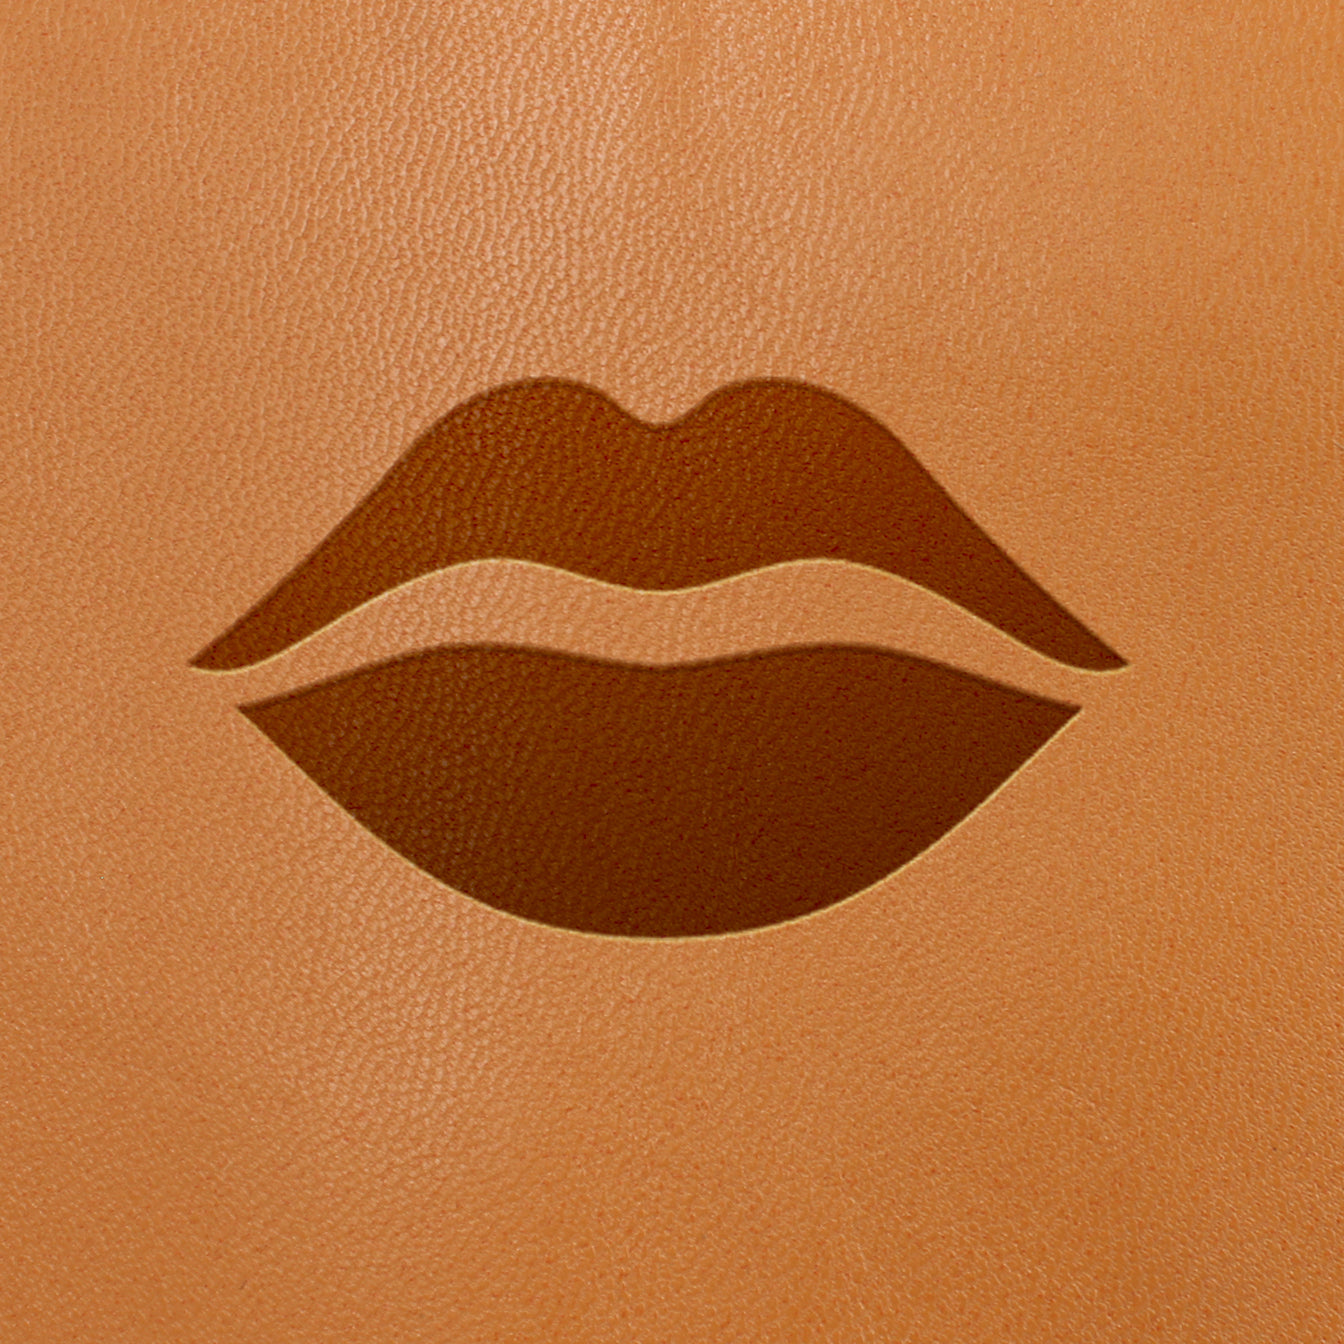 Lips Symbol - Fire Branded Images